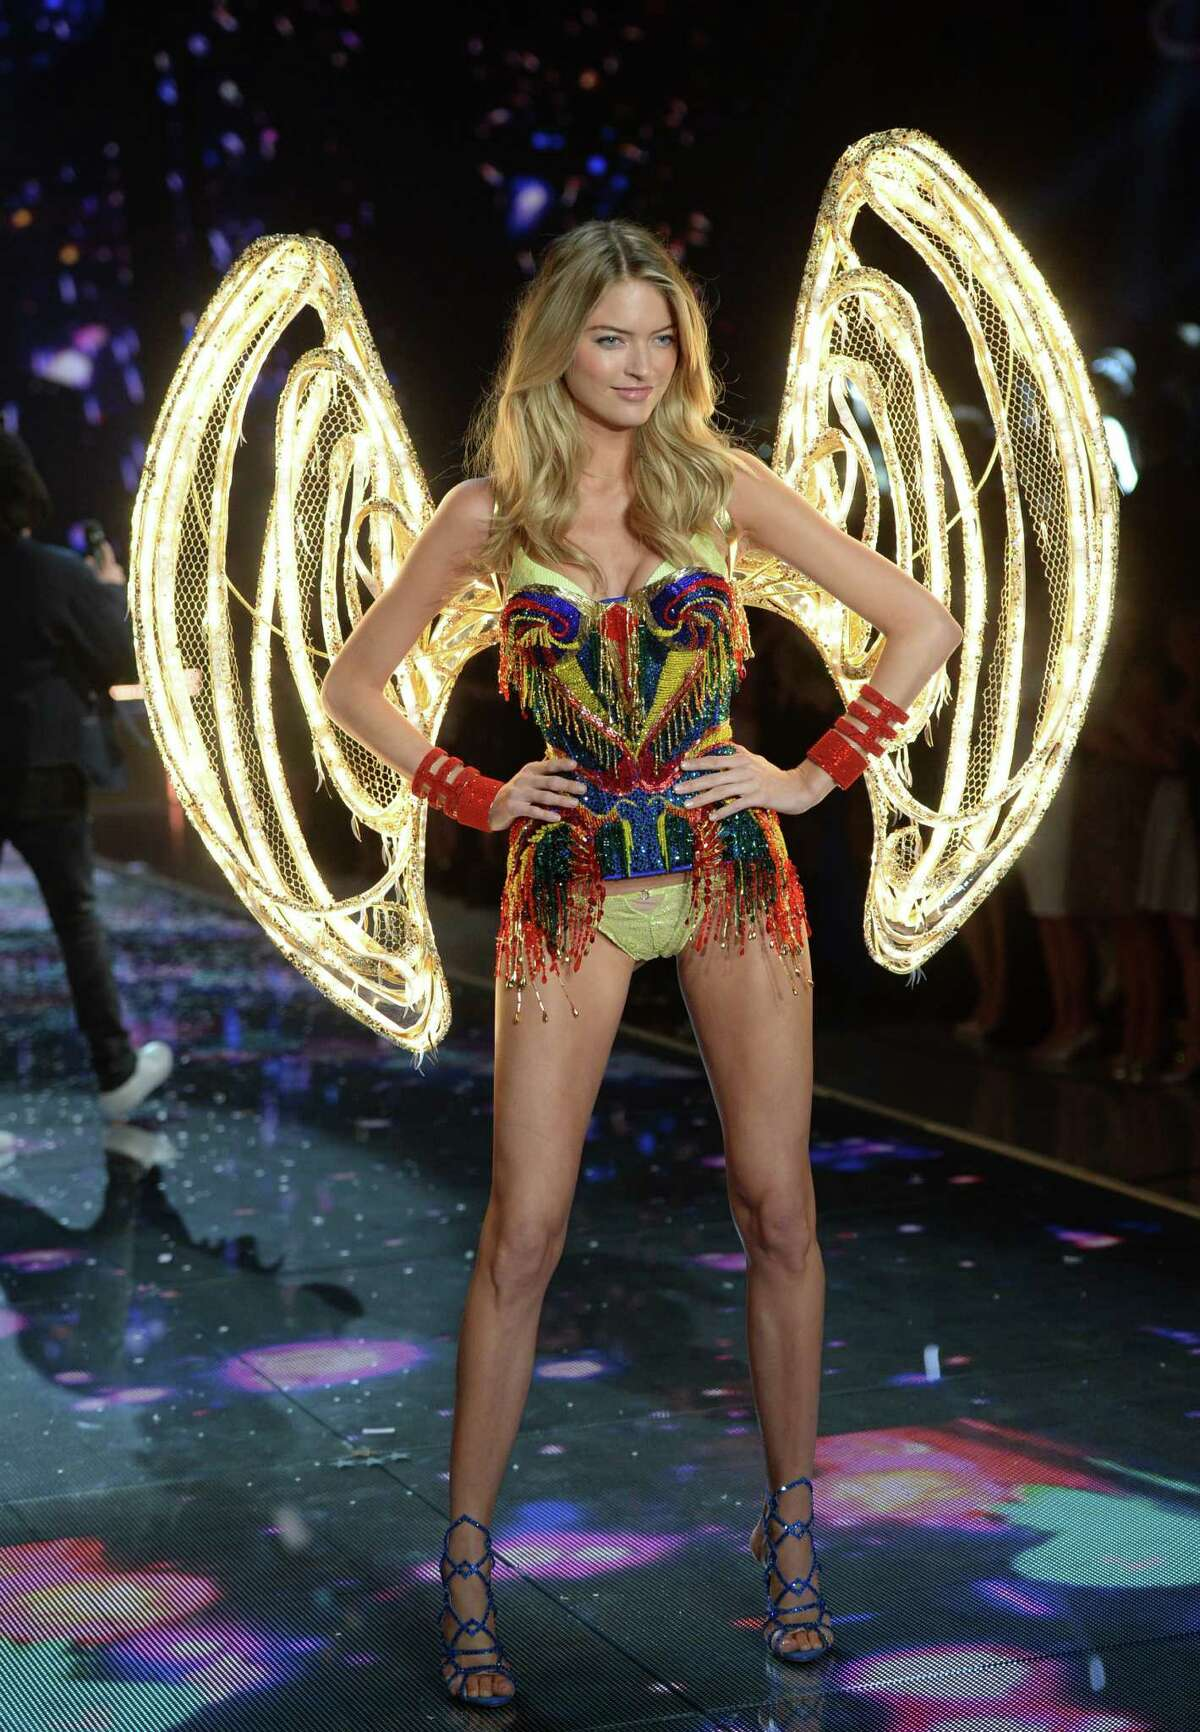 Martha Hunt walks the runway during the Victoria's Secret Fashion Show at the Lexington Armory on Tuesday, Nov. 10, 2015, in New York. The Victoria's Secret Fashion Show will air on CBS on Tuesday, Dec. 8, at 10pm EST. (Photo by Evan Agostini/Invision/AP)